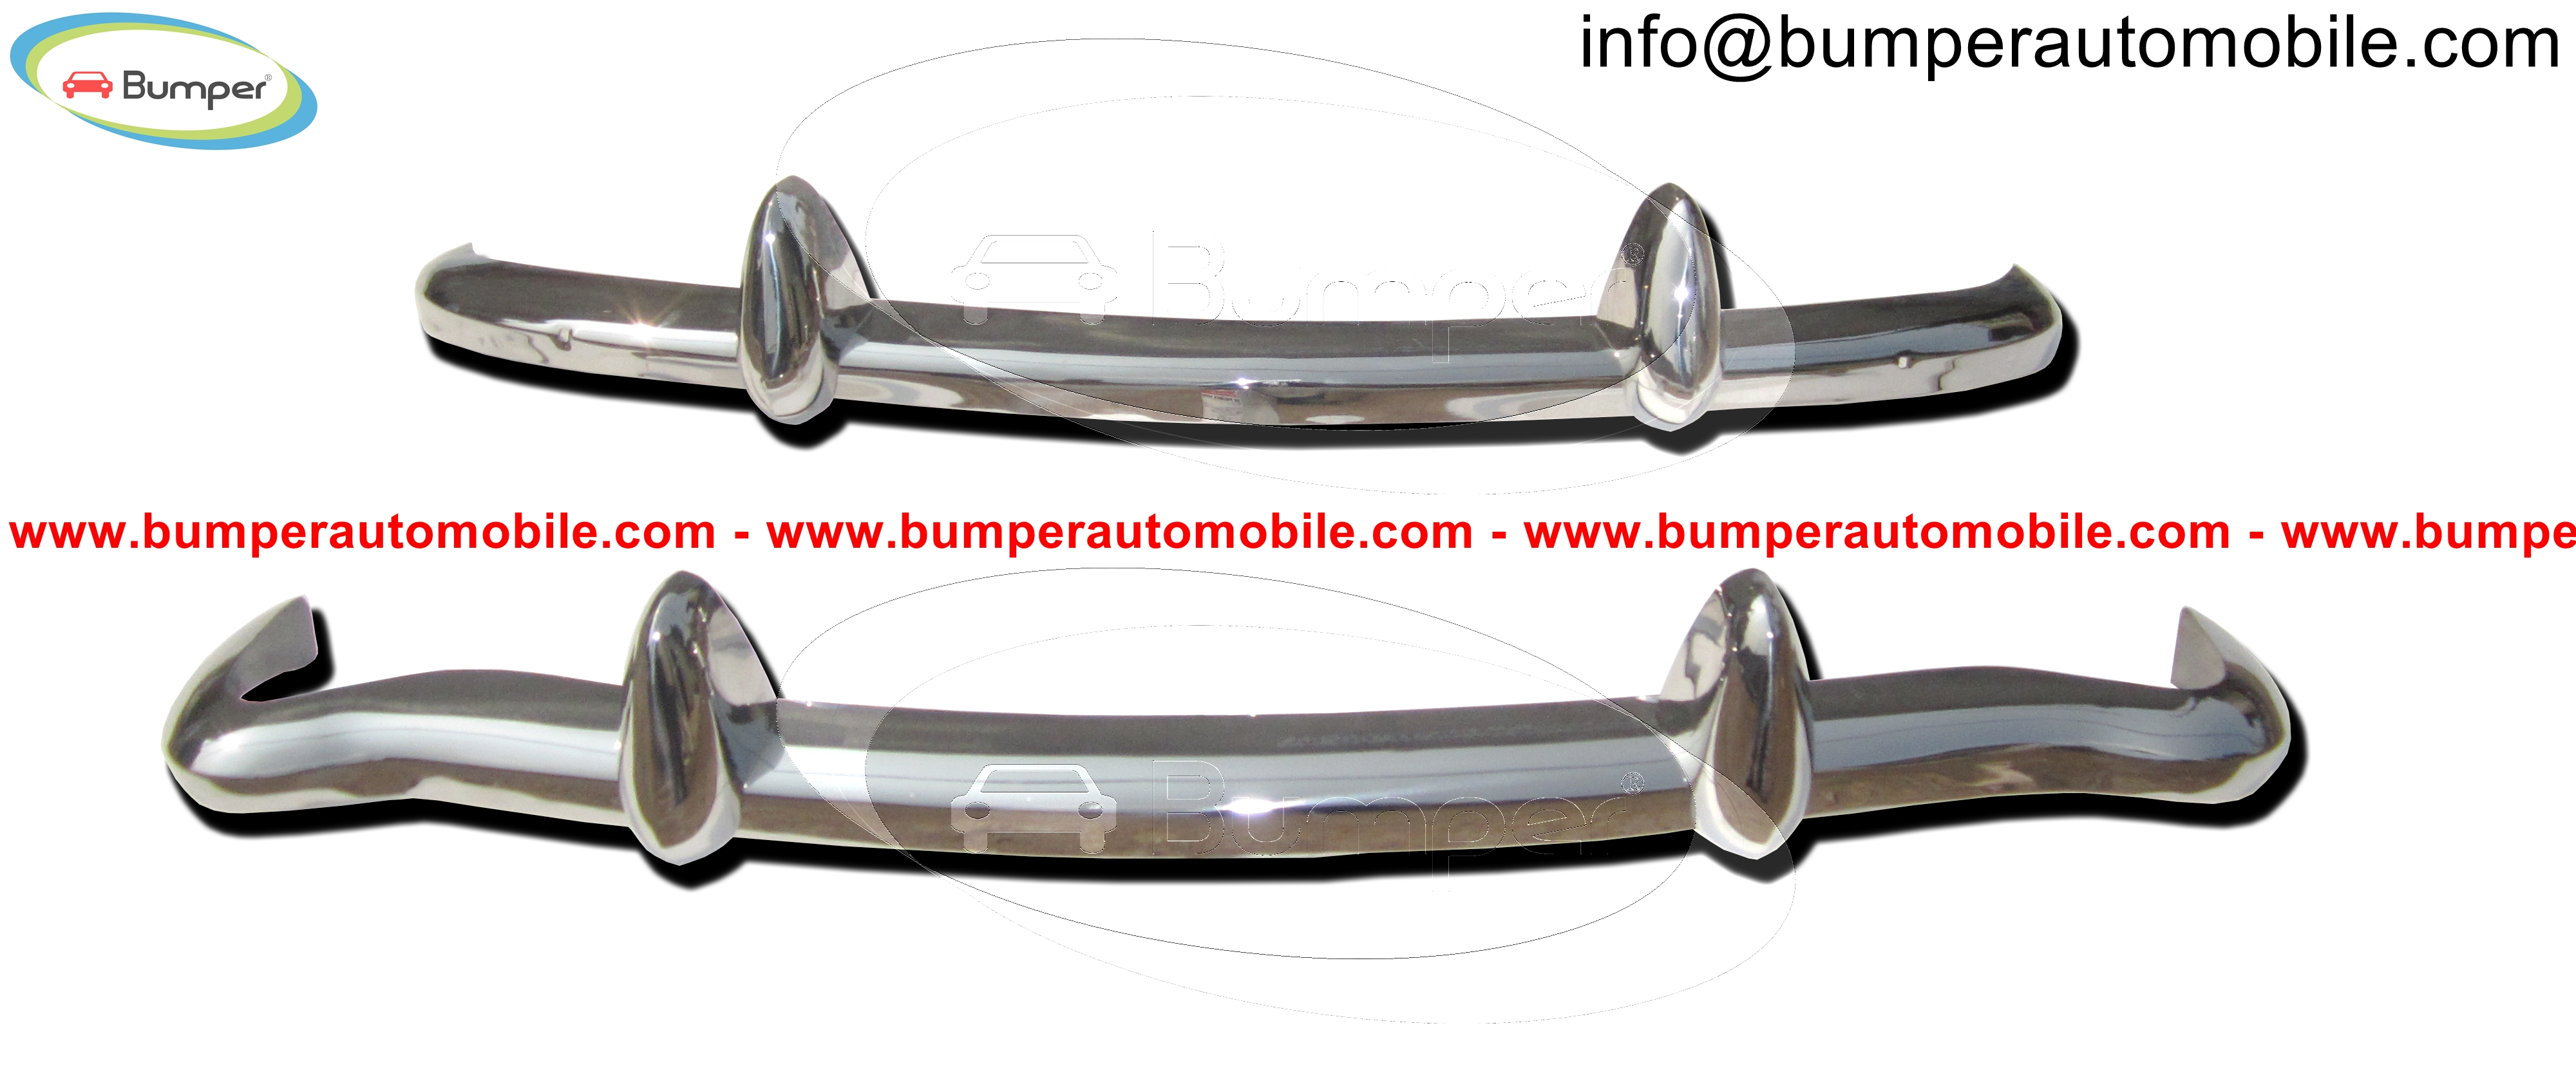 MGB Roadster, MGB GT, MGC Roadster, GT and MGB V8 bumpers (1962-1974) polished stainless steel